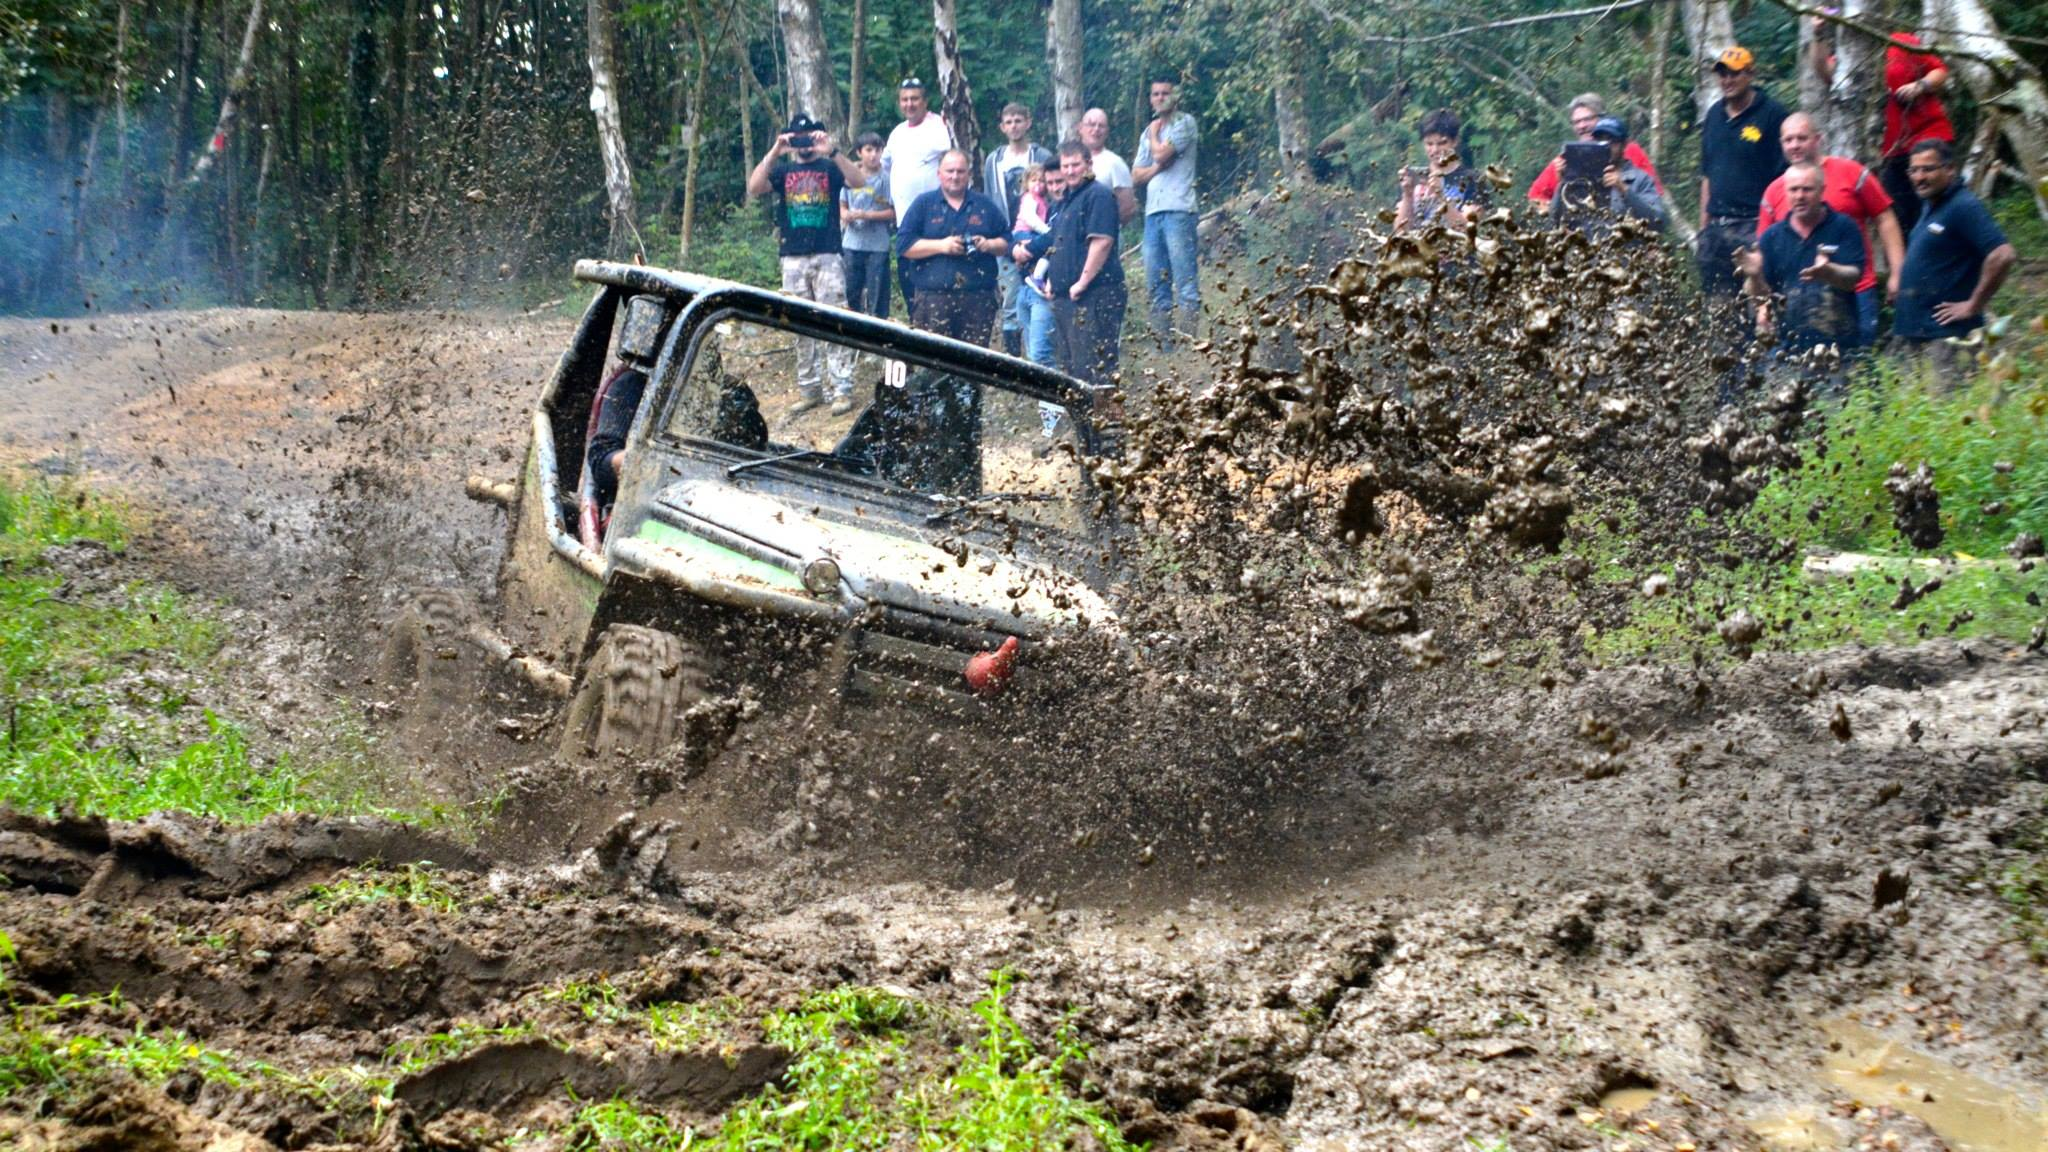 The annual UK Rhino Charge raises money for conservation projects in Kenya